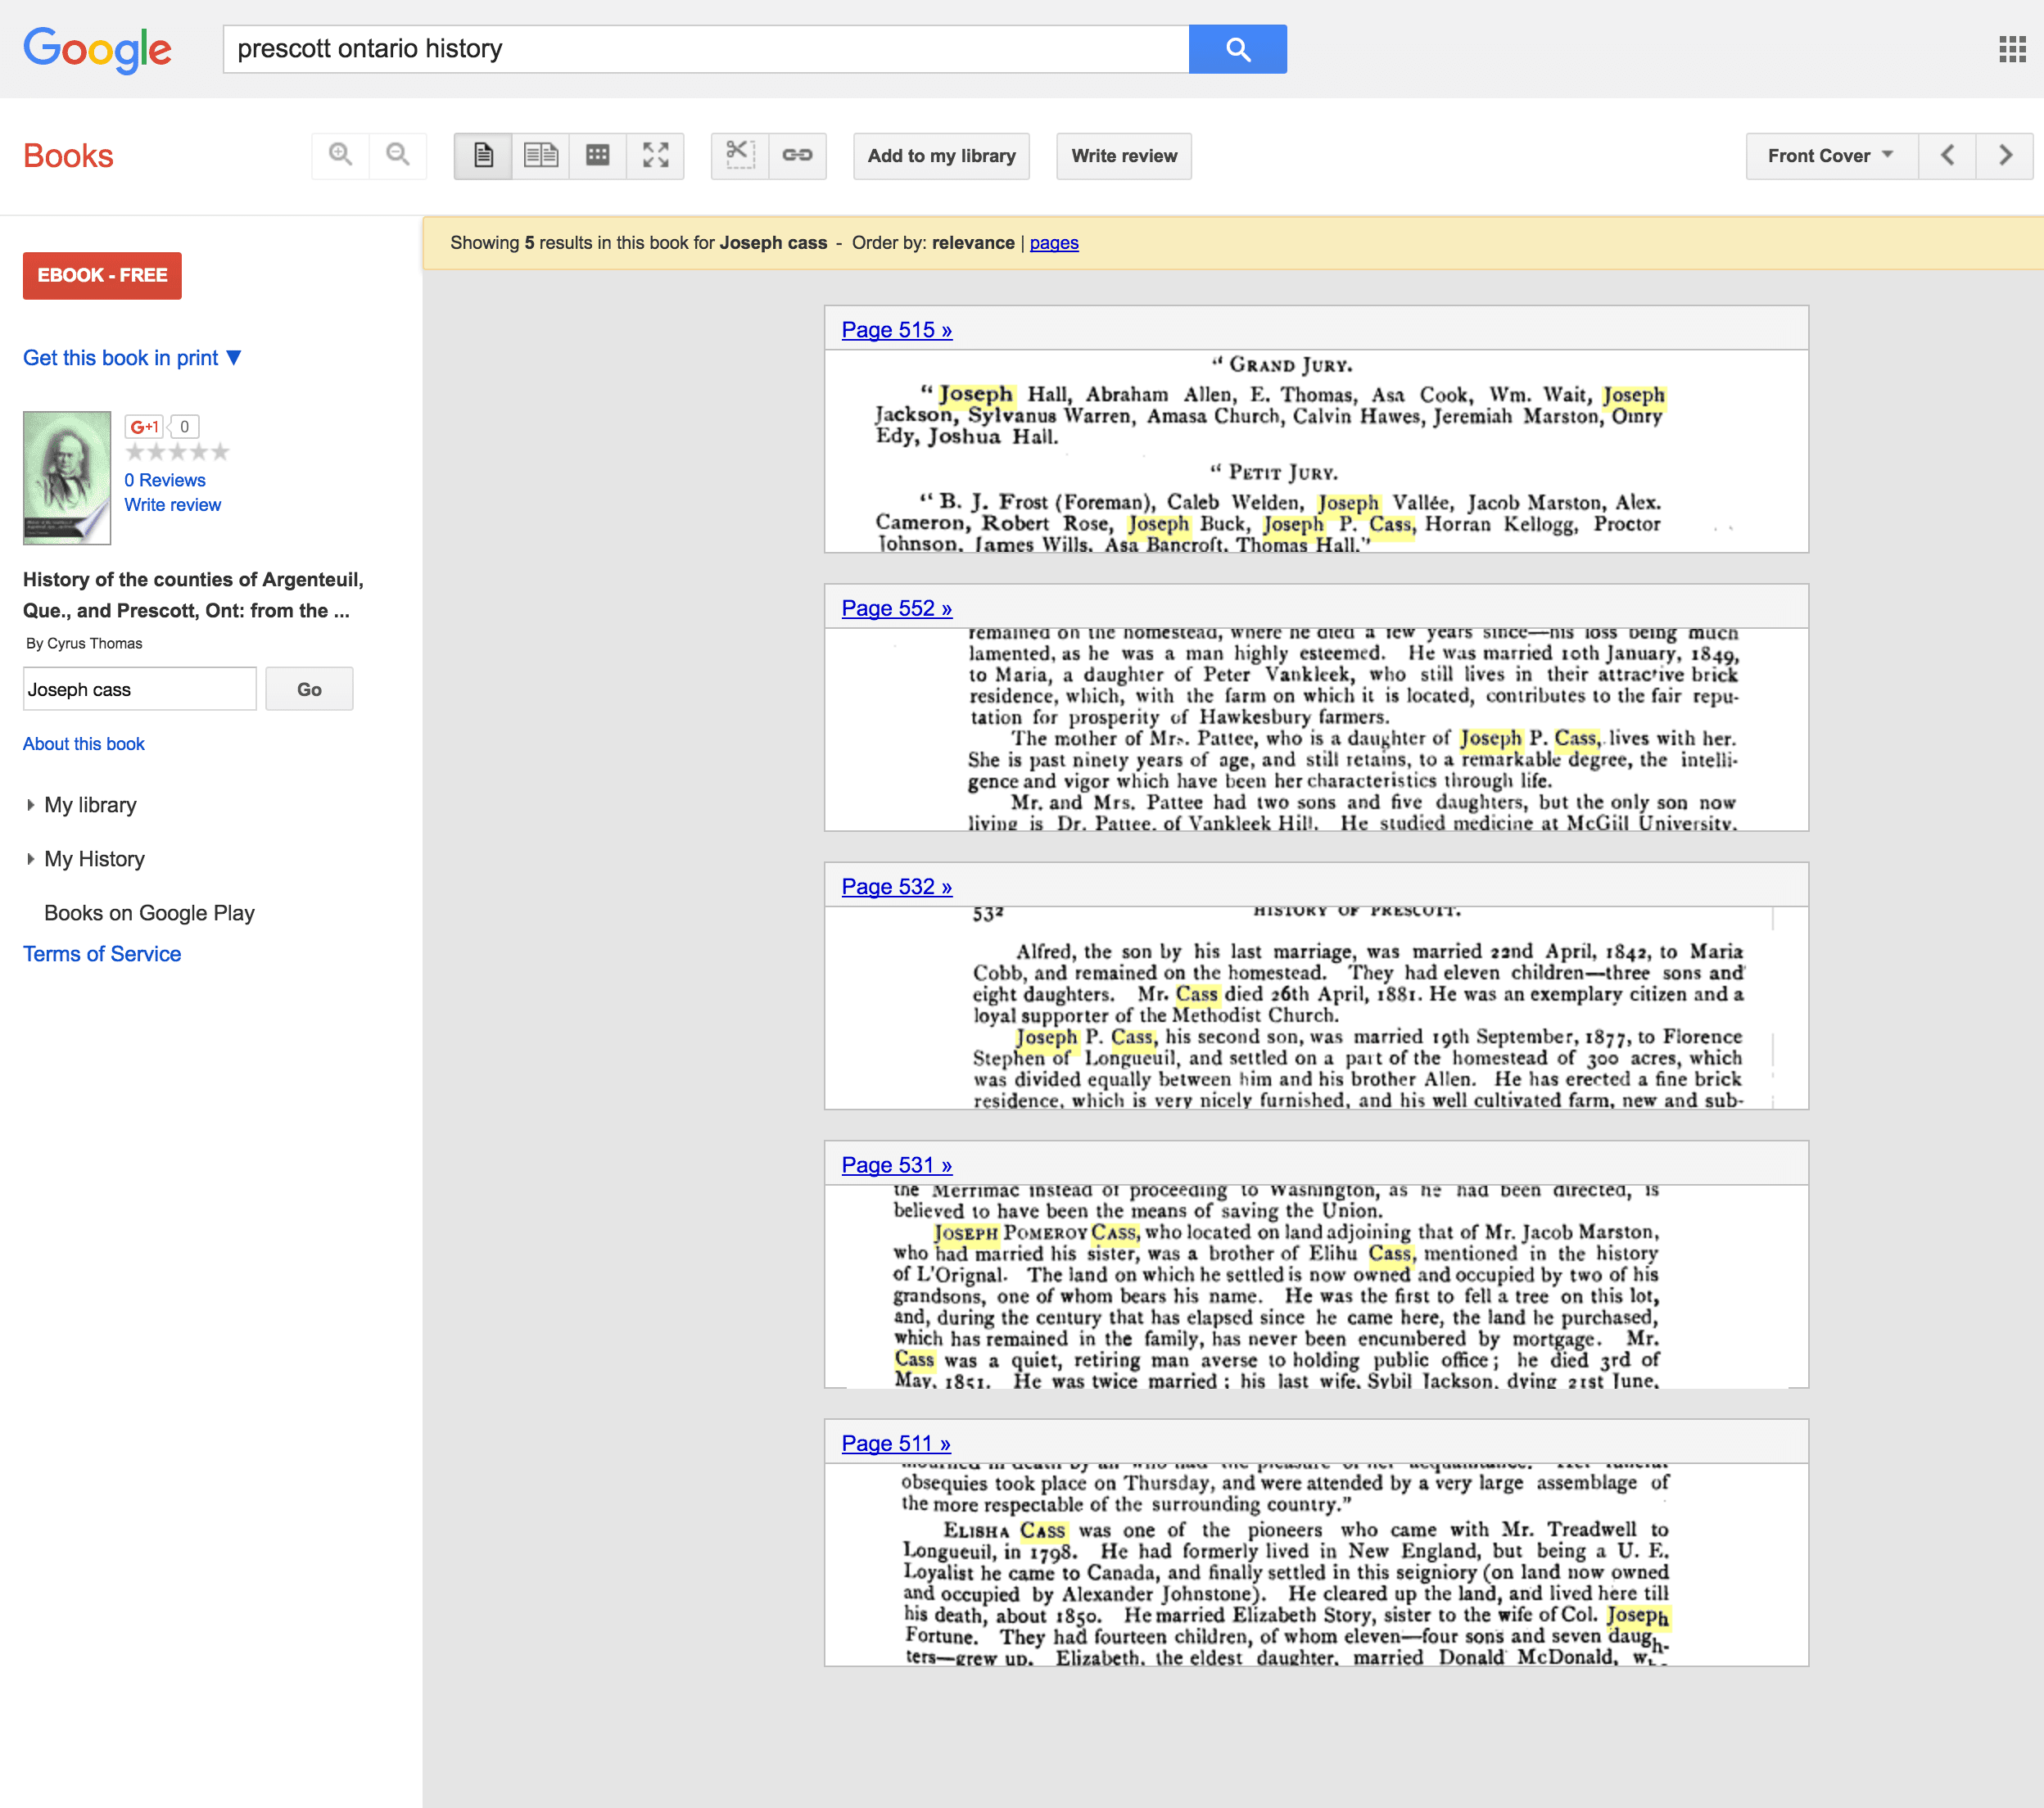 how to find page numbers on google books